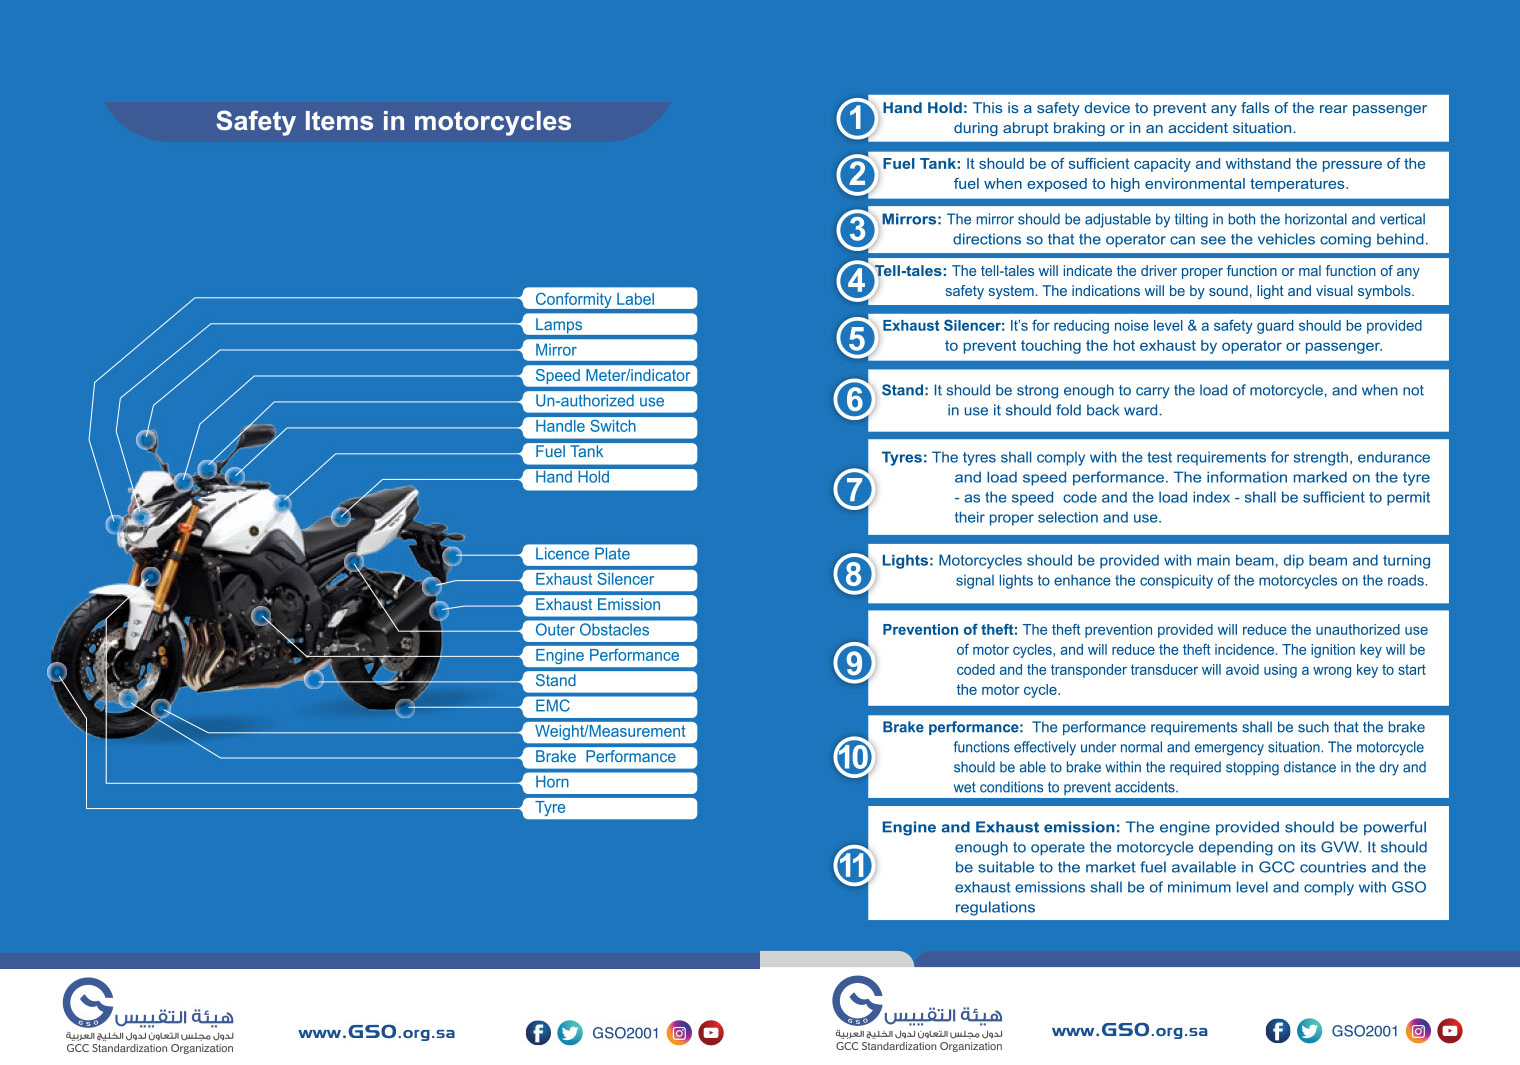 Safety Items in Motor Cycles